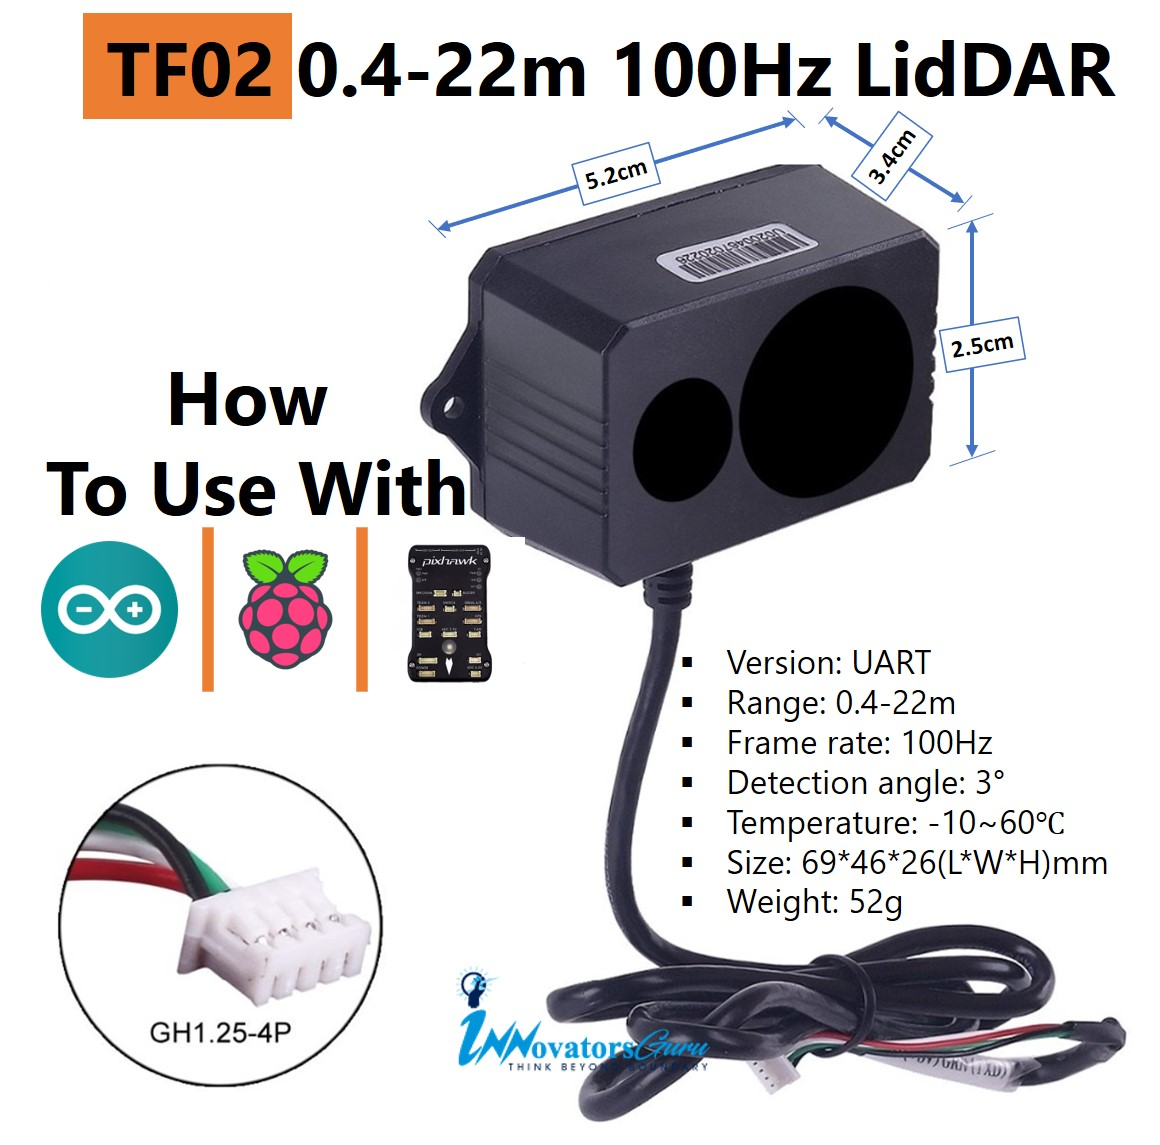 TF02 Lidar for Arduino and Pixhawk | How to Use